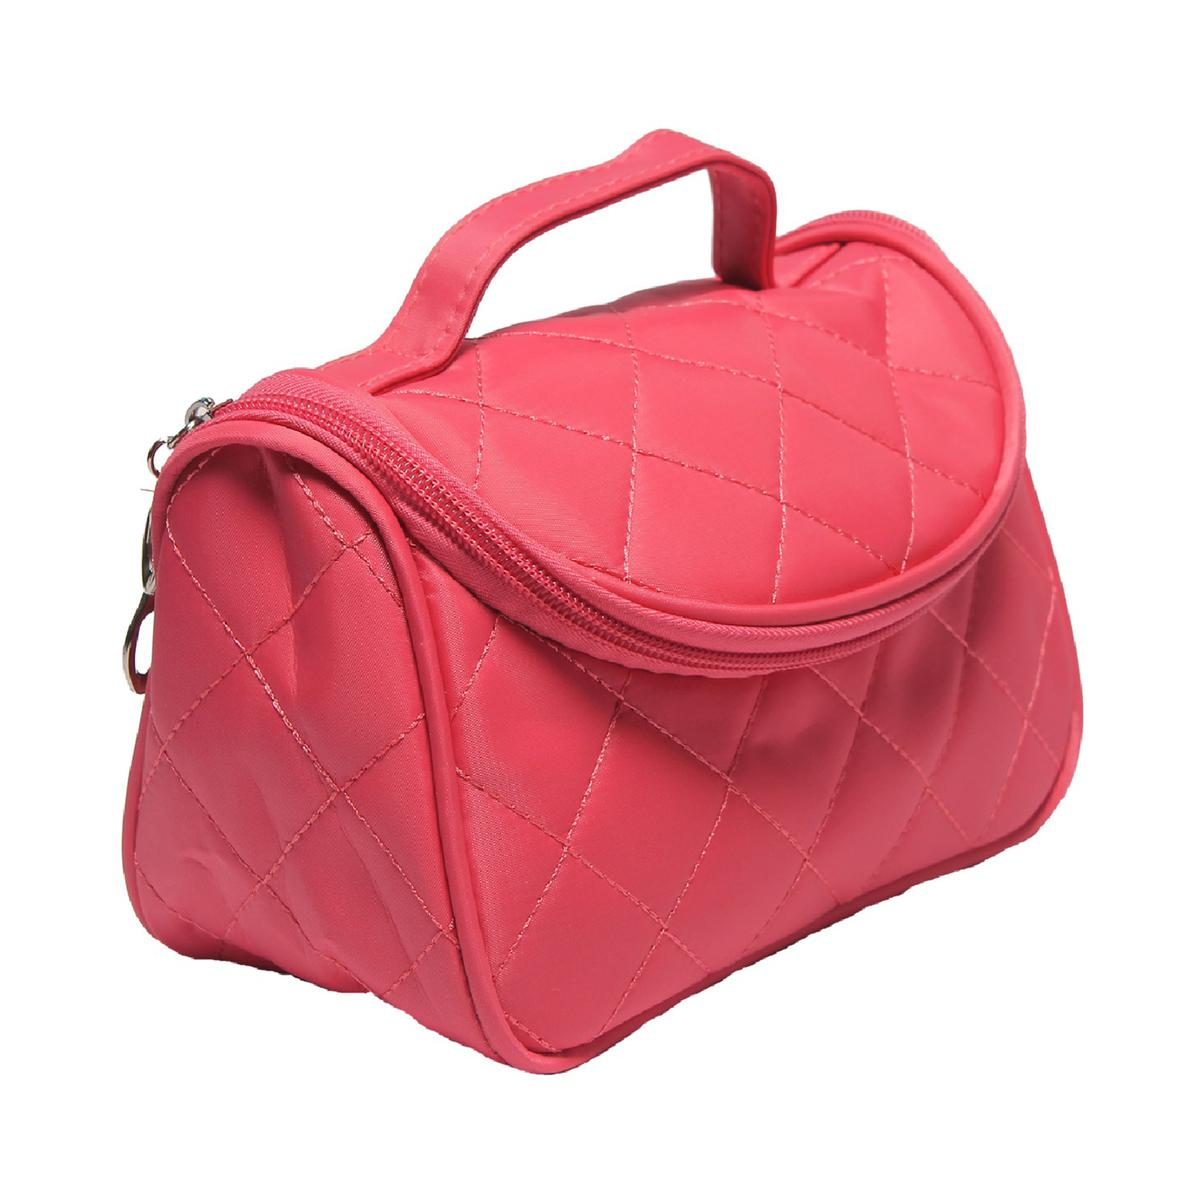 NFI essentials - Solid Cosmetic Pouch (Light Pink)